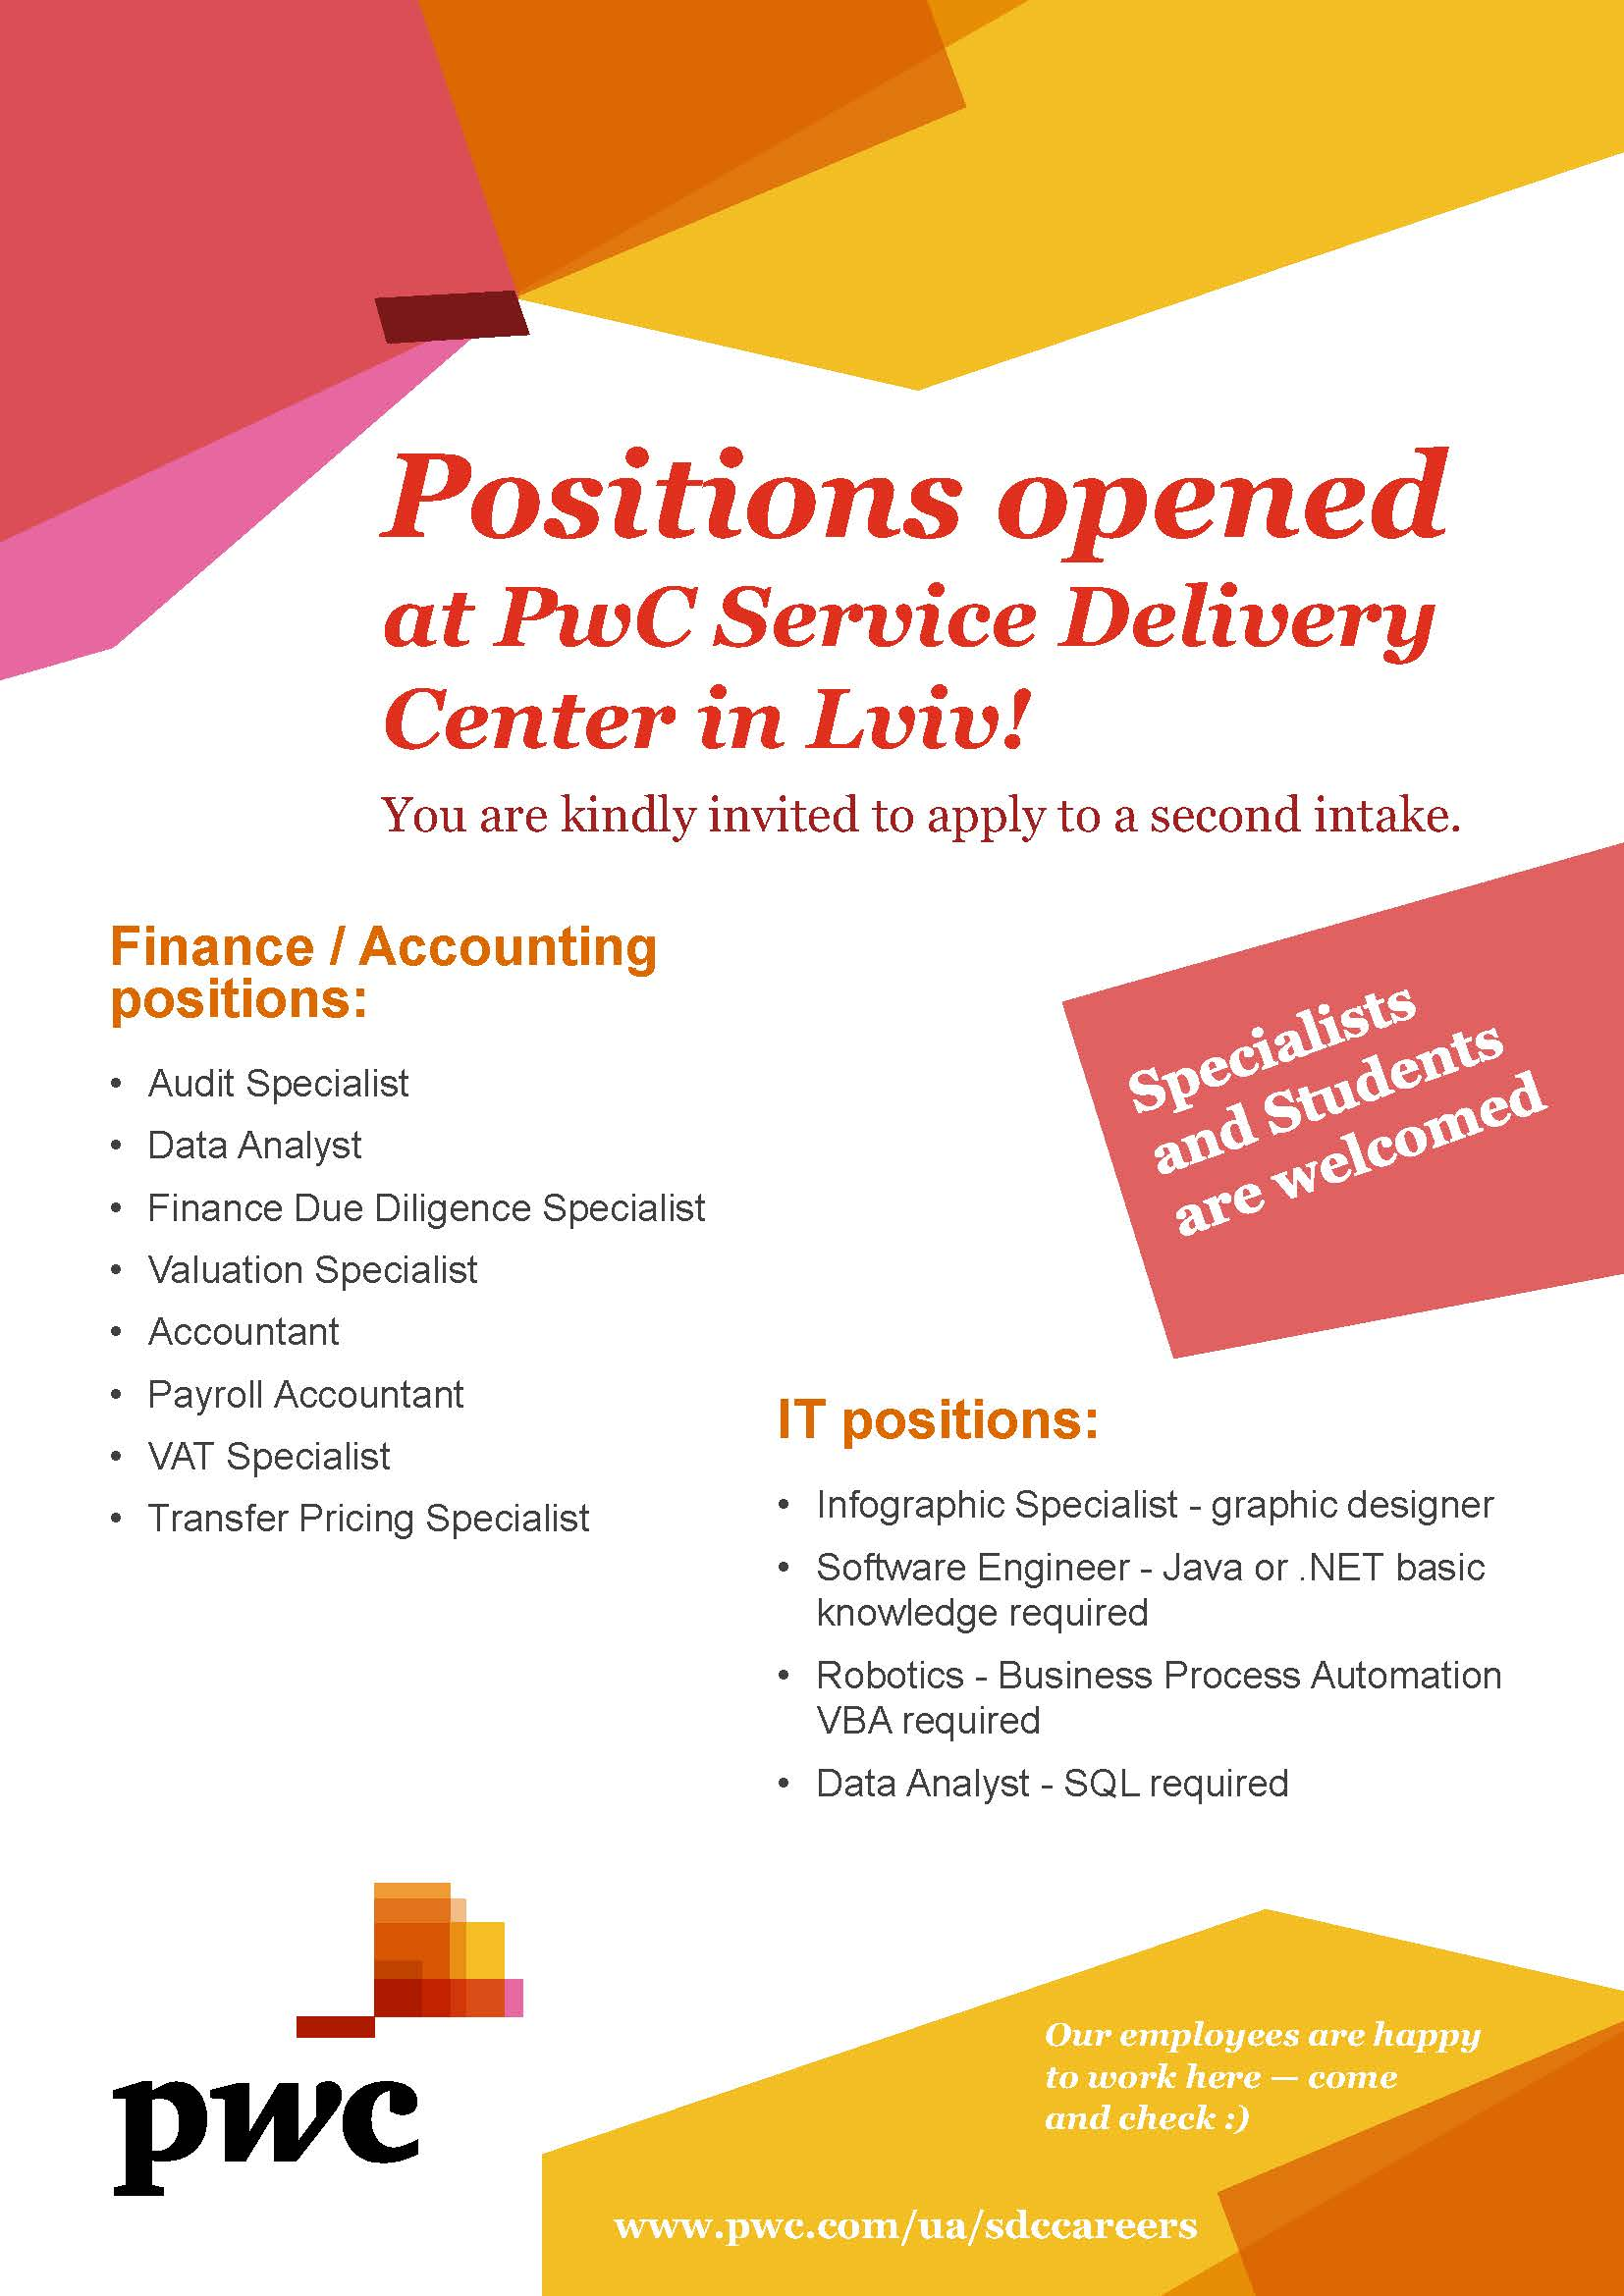 Positions opened at PwC Service Delivery Center PRINT (3) (2)